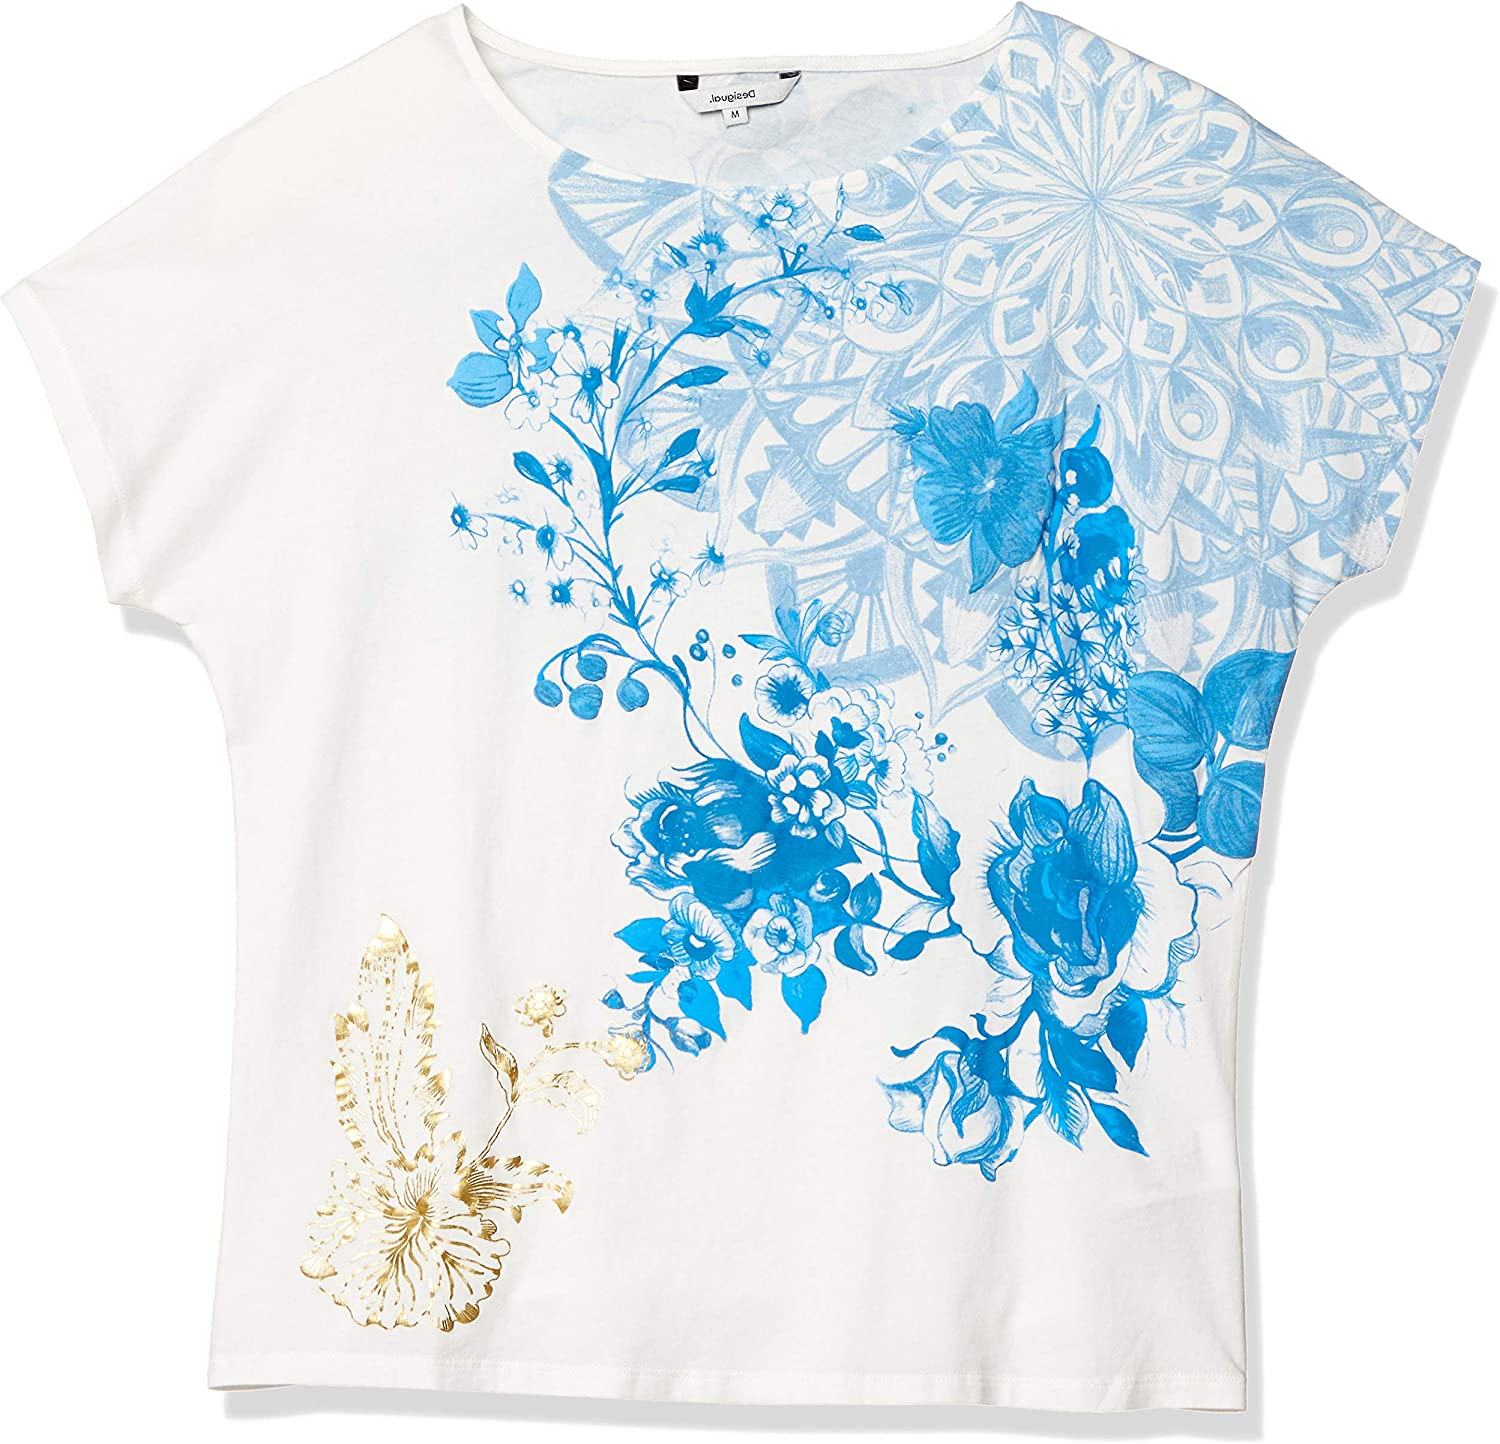 Desigual T-Shirt Donna TS Under 20swtkcs XS Bianco